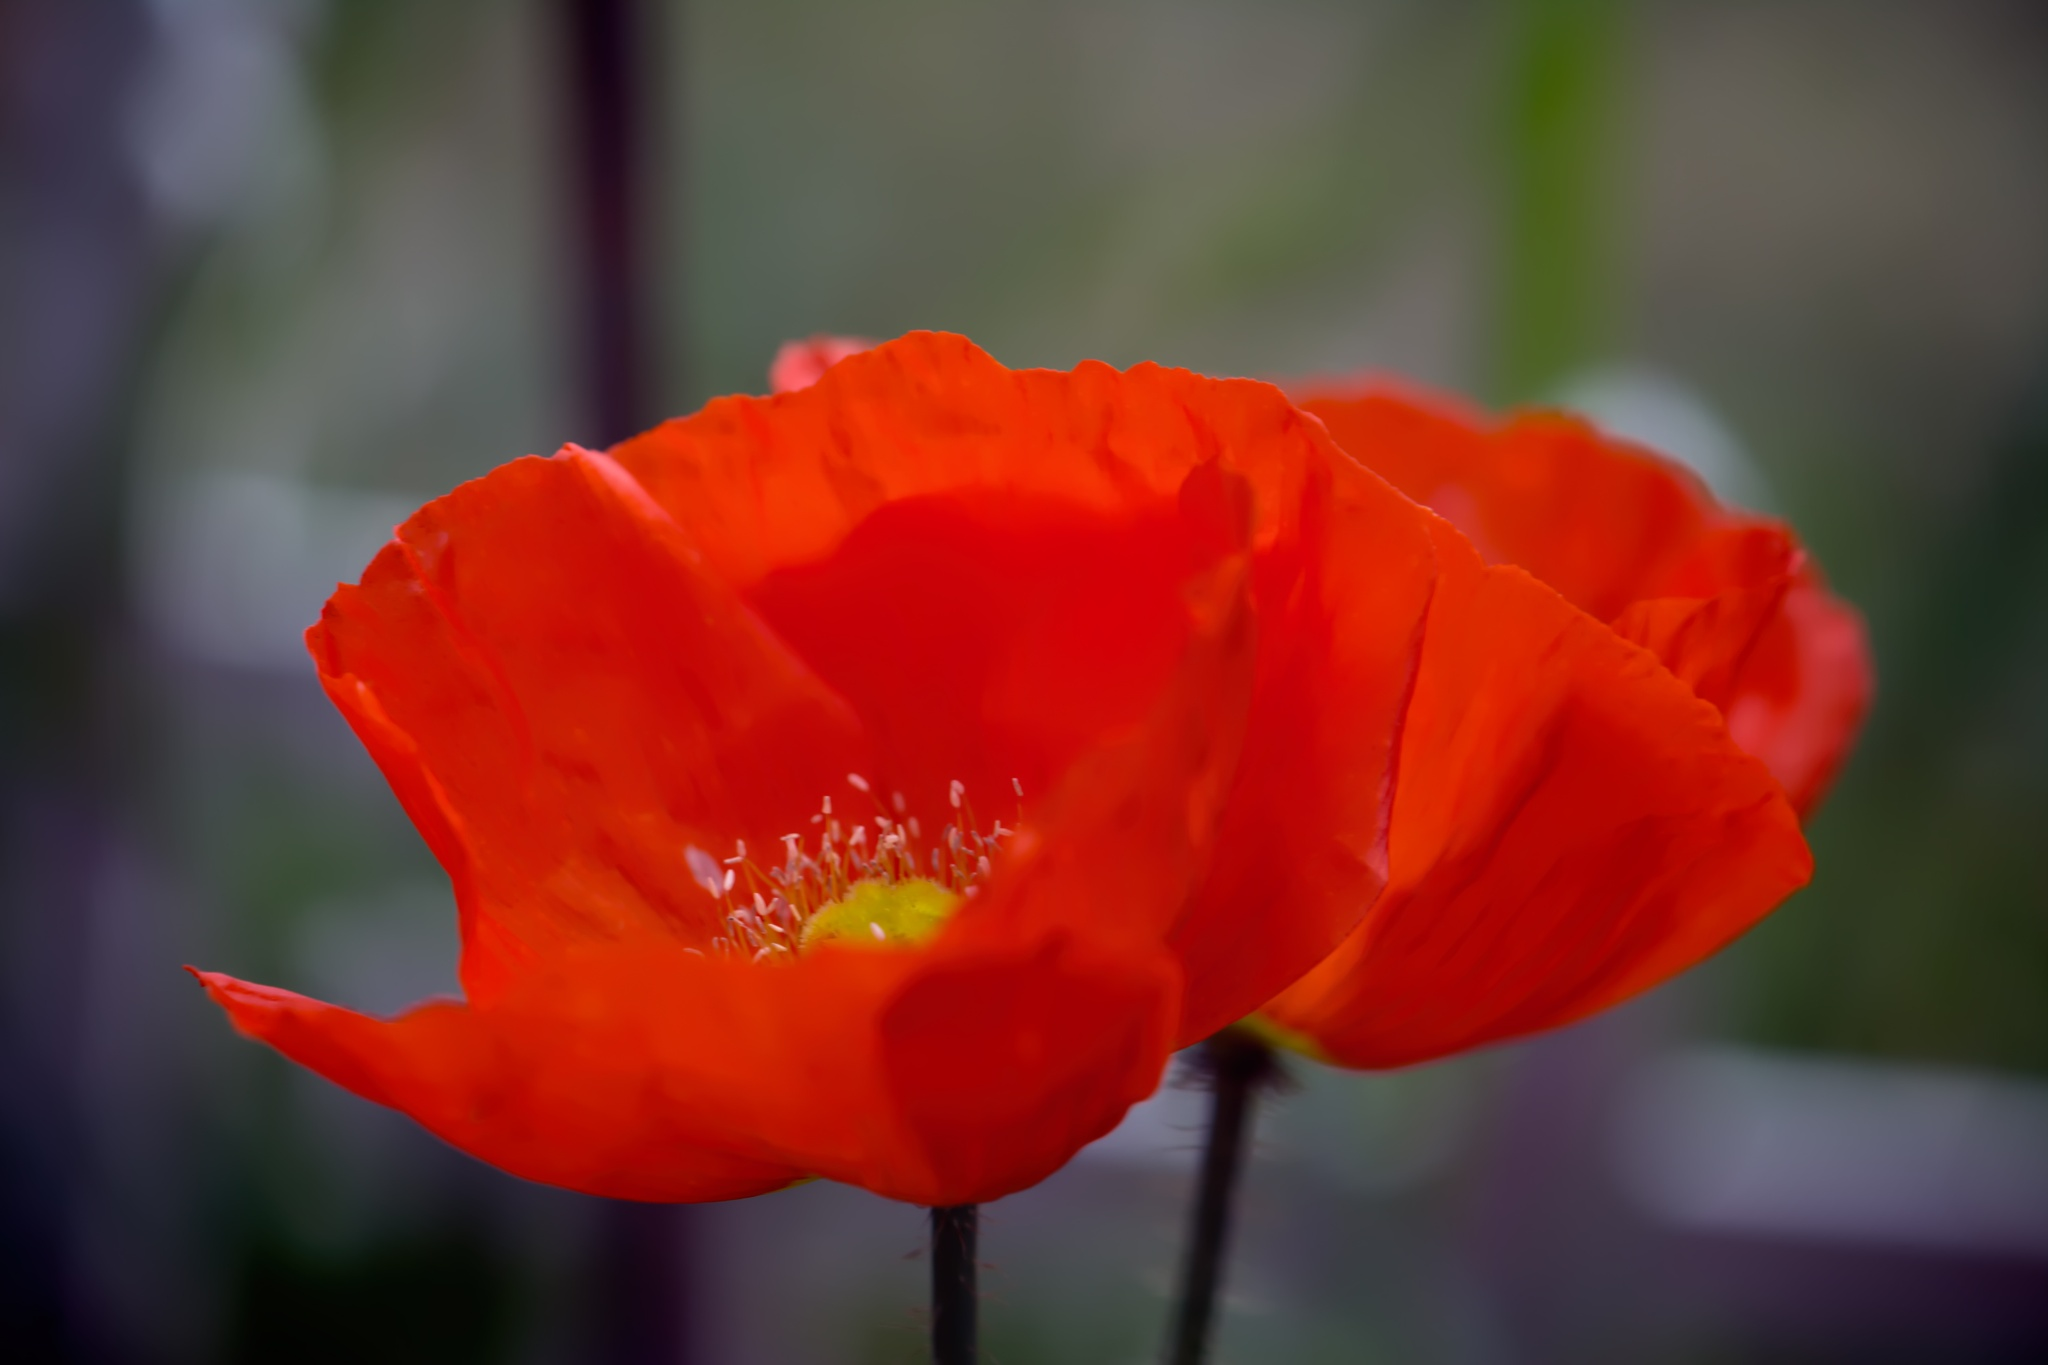 Red Poppys 721 by ThomasJerger